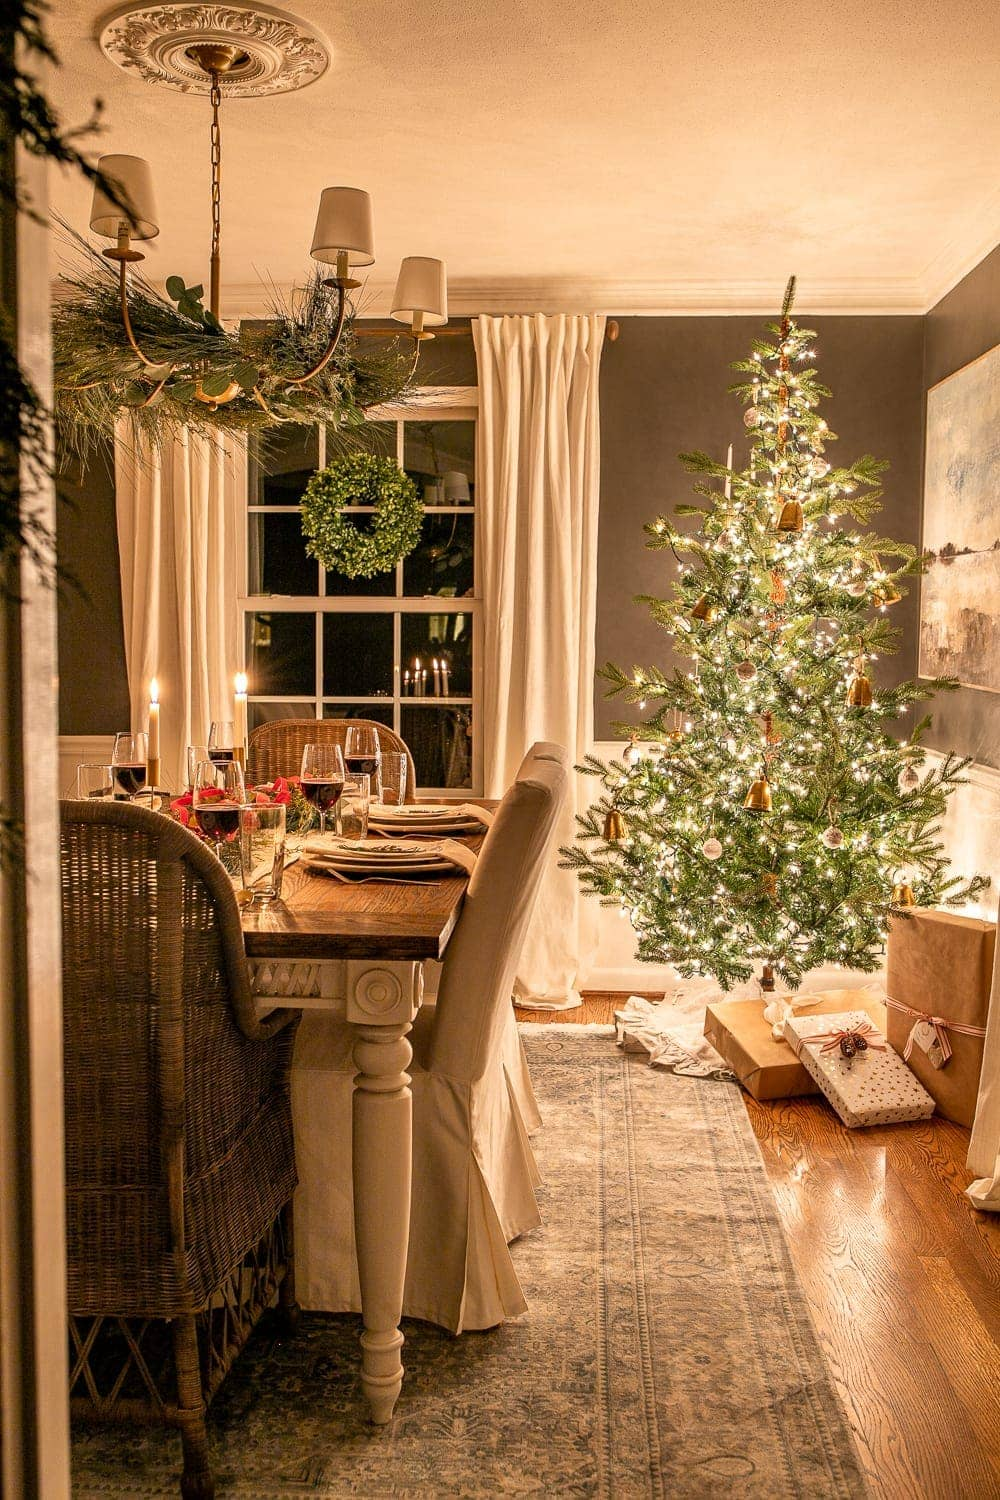 Christmas dining room at night